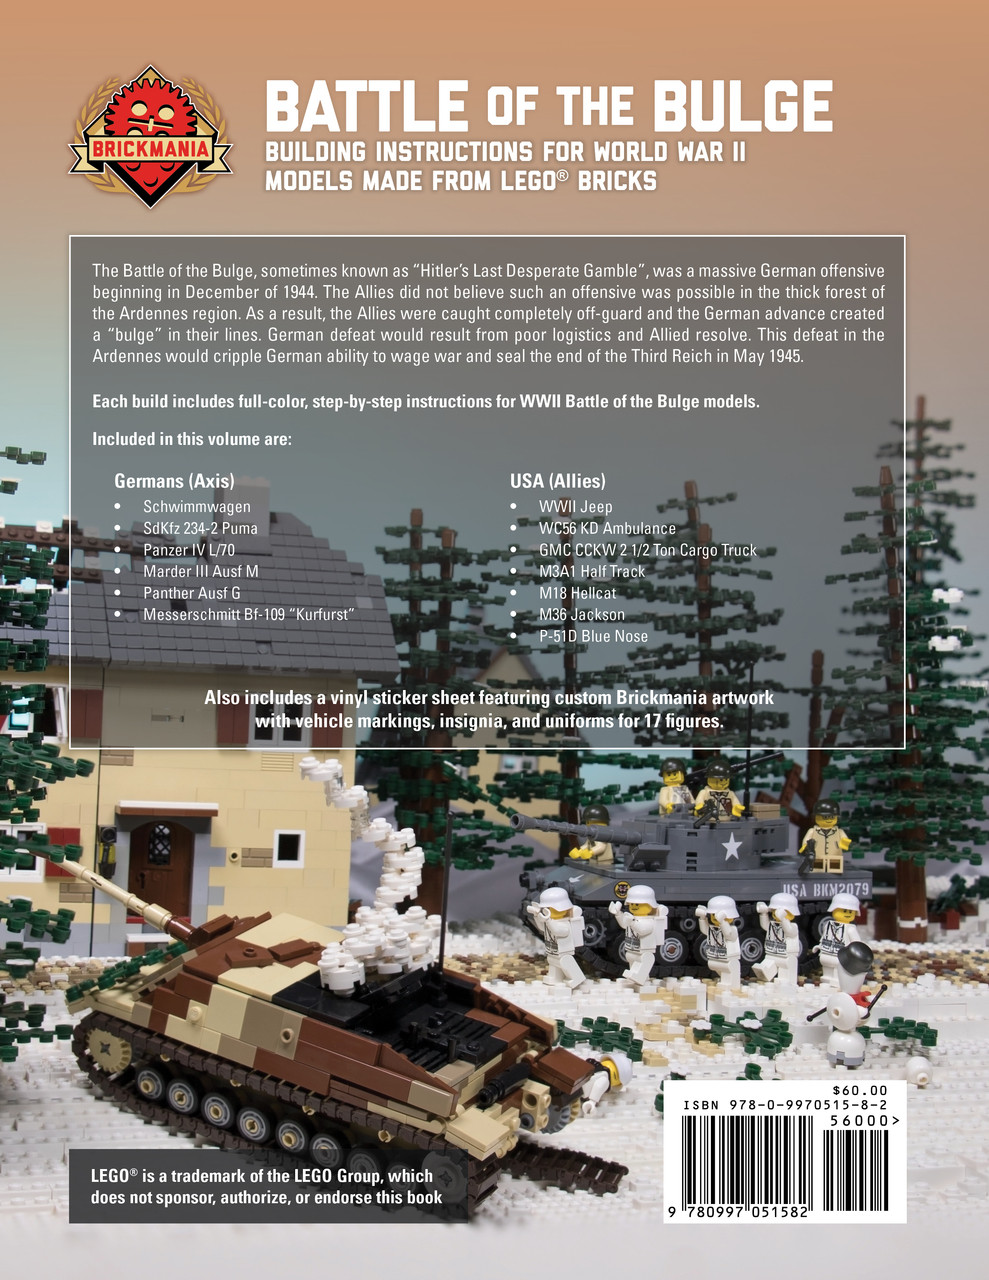 Lego brickmania instructions